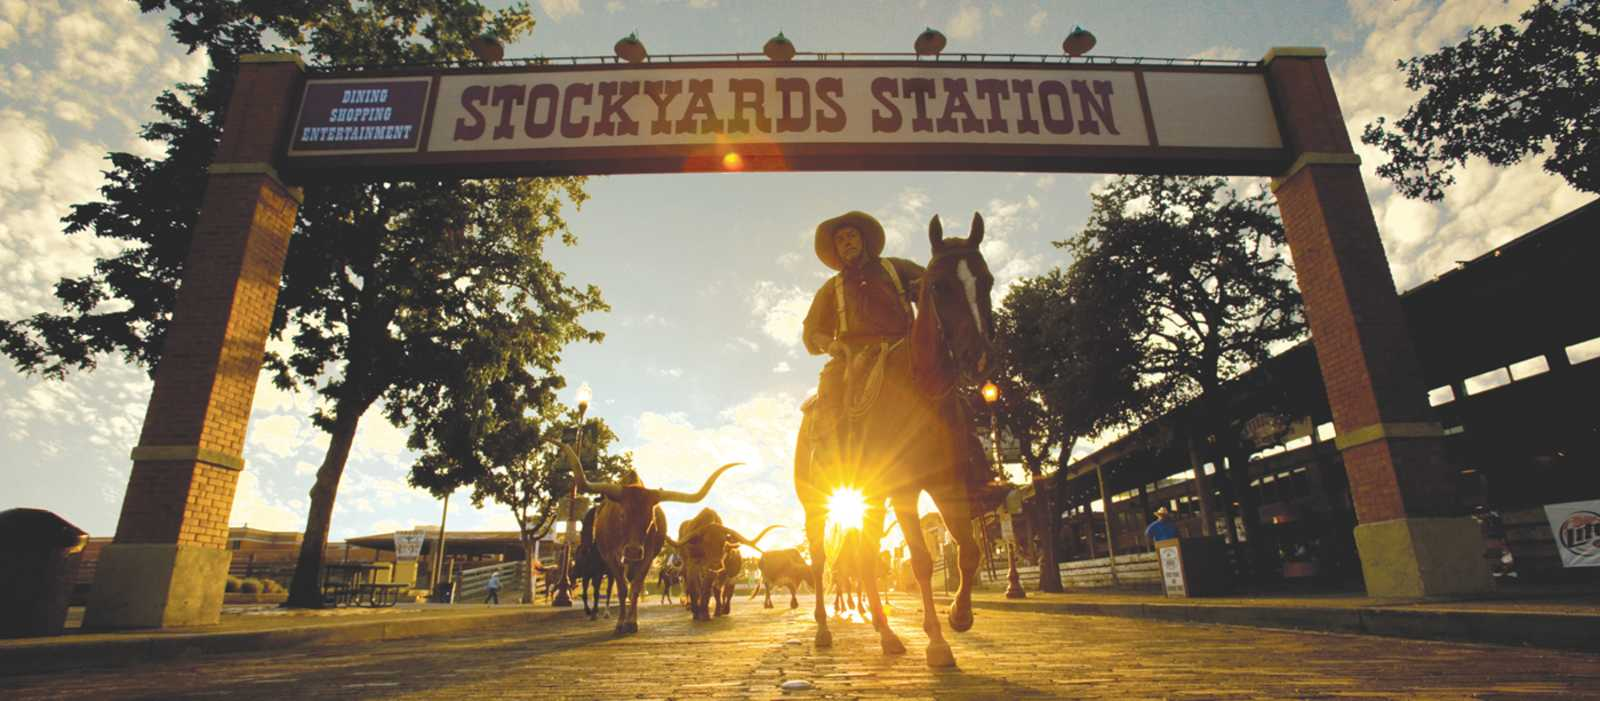 Stockyard Station